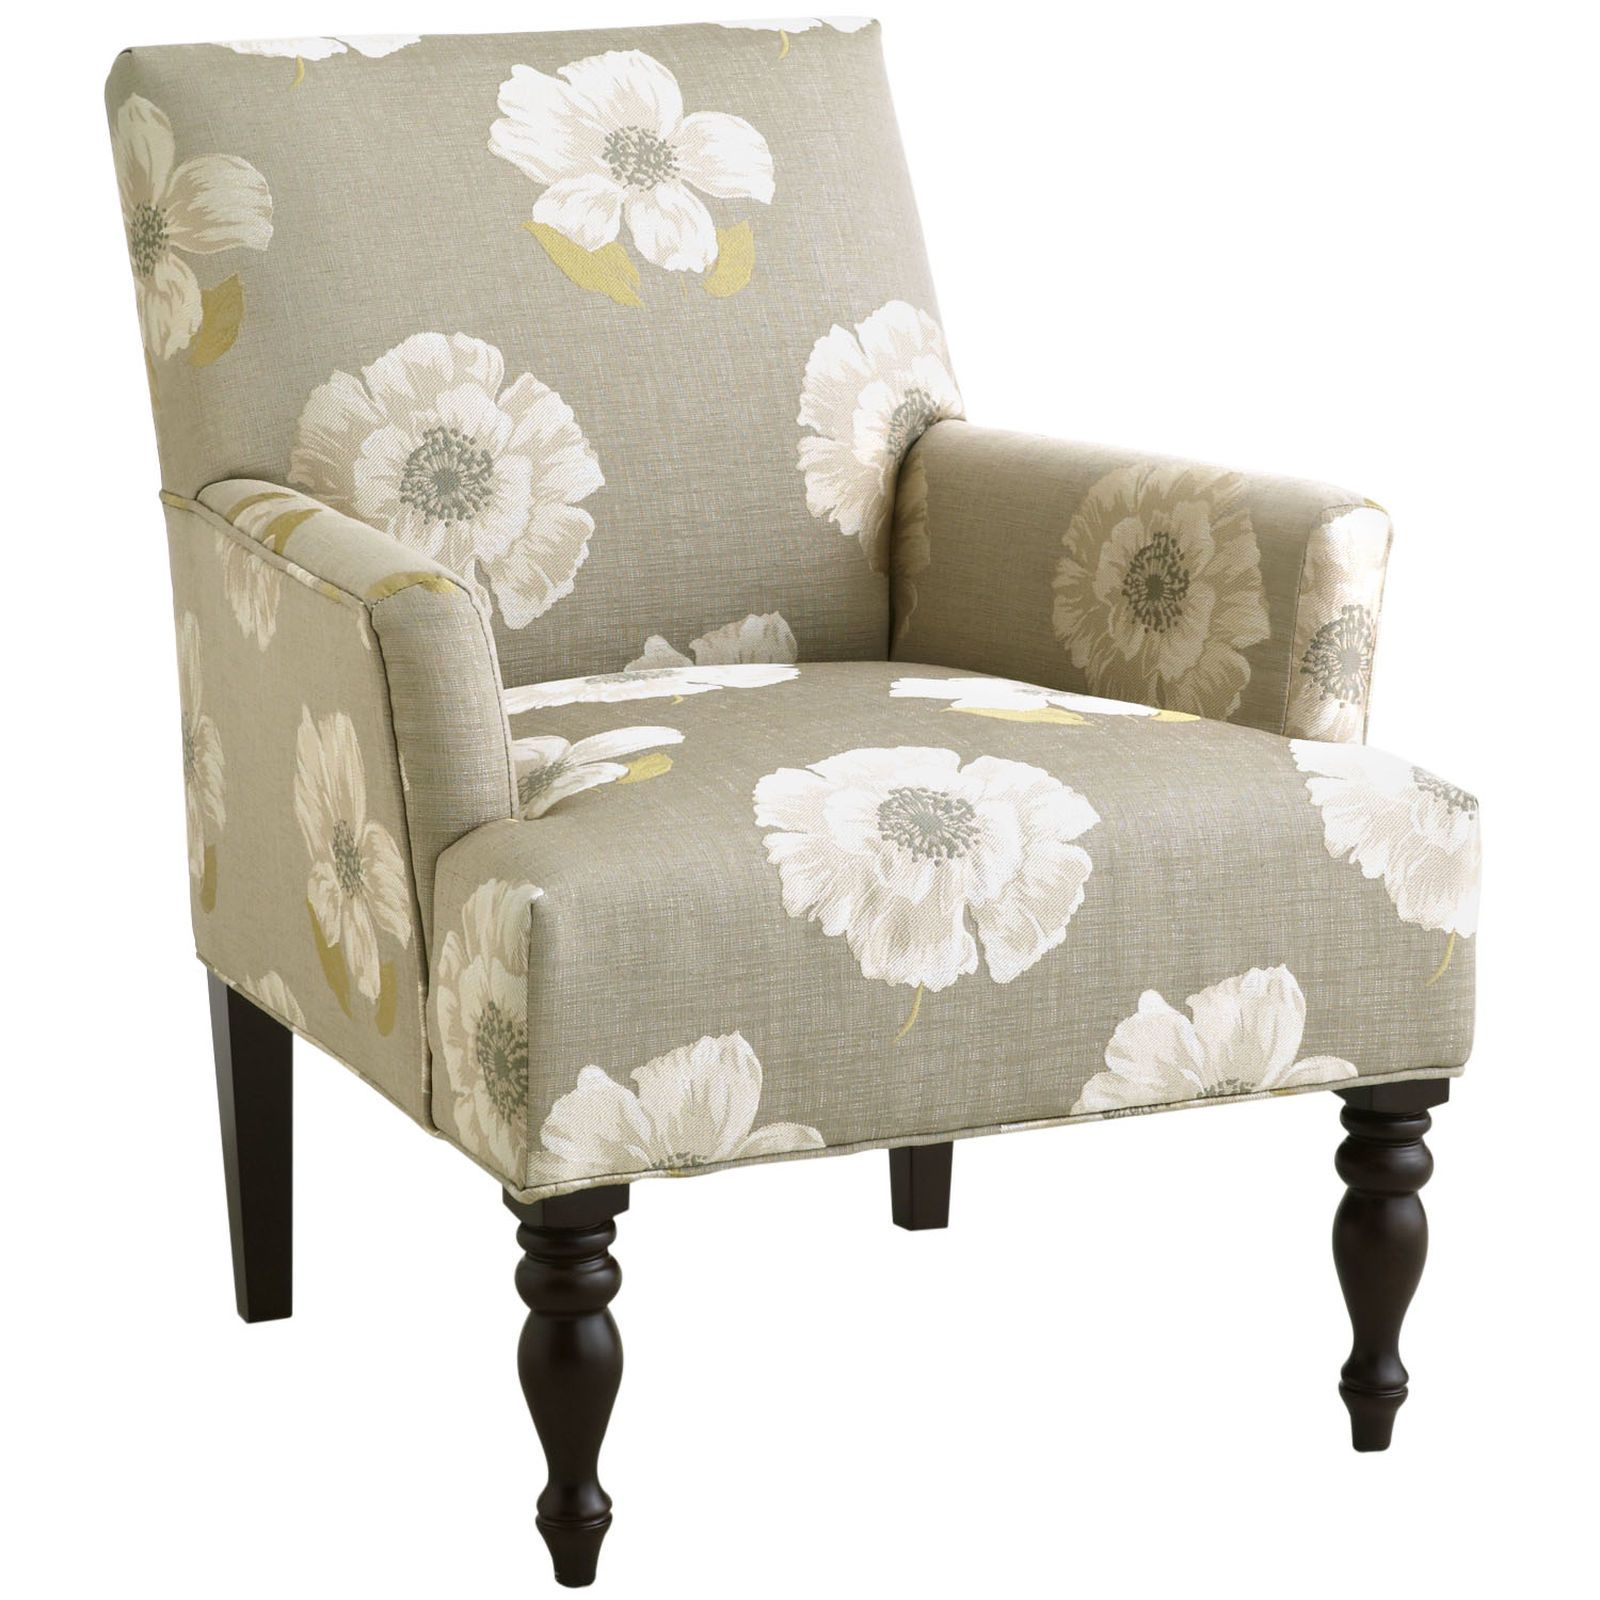 Liliana Armchair - Floral Ivory | Pier 1 Imports | module1_patterns ...